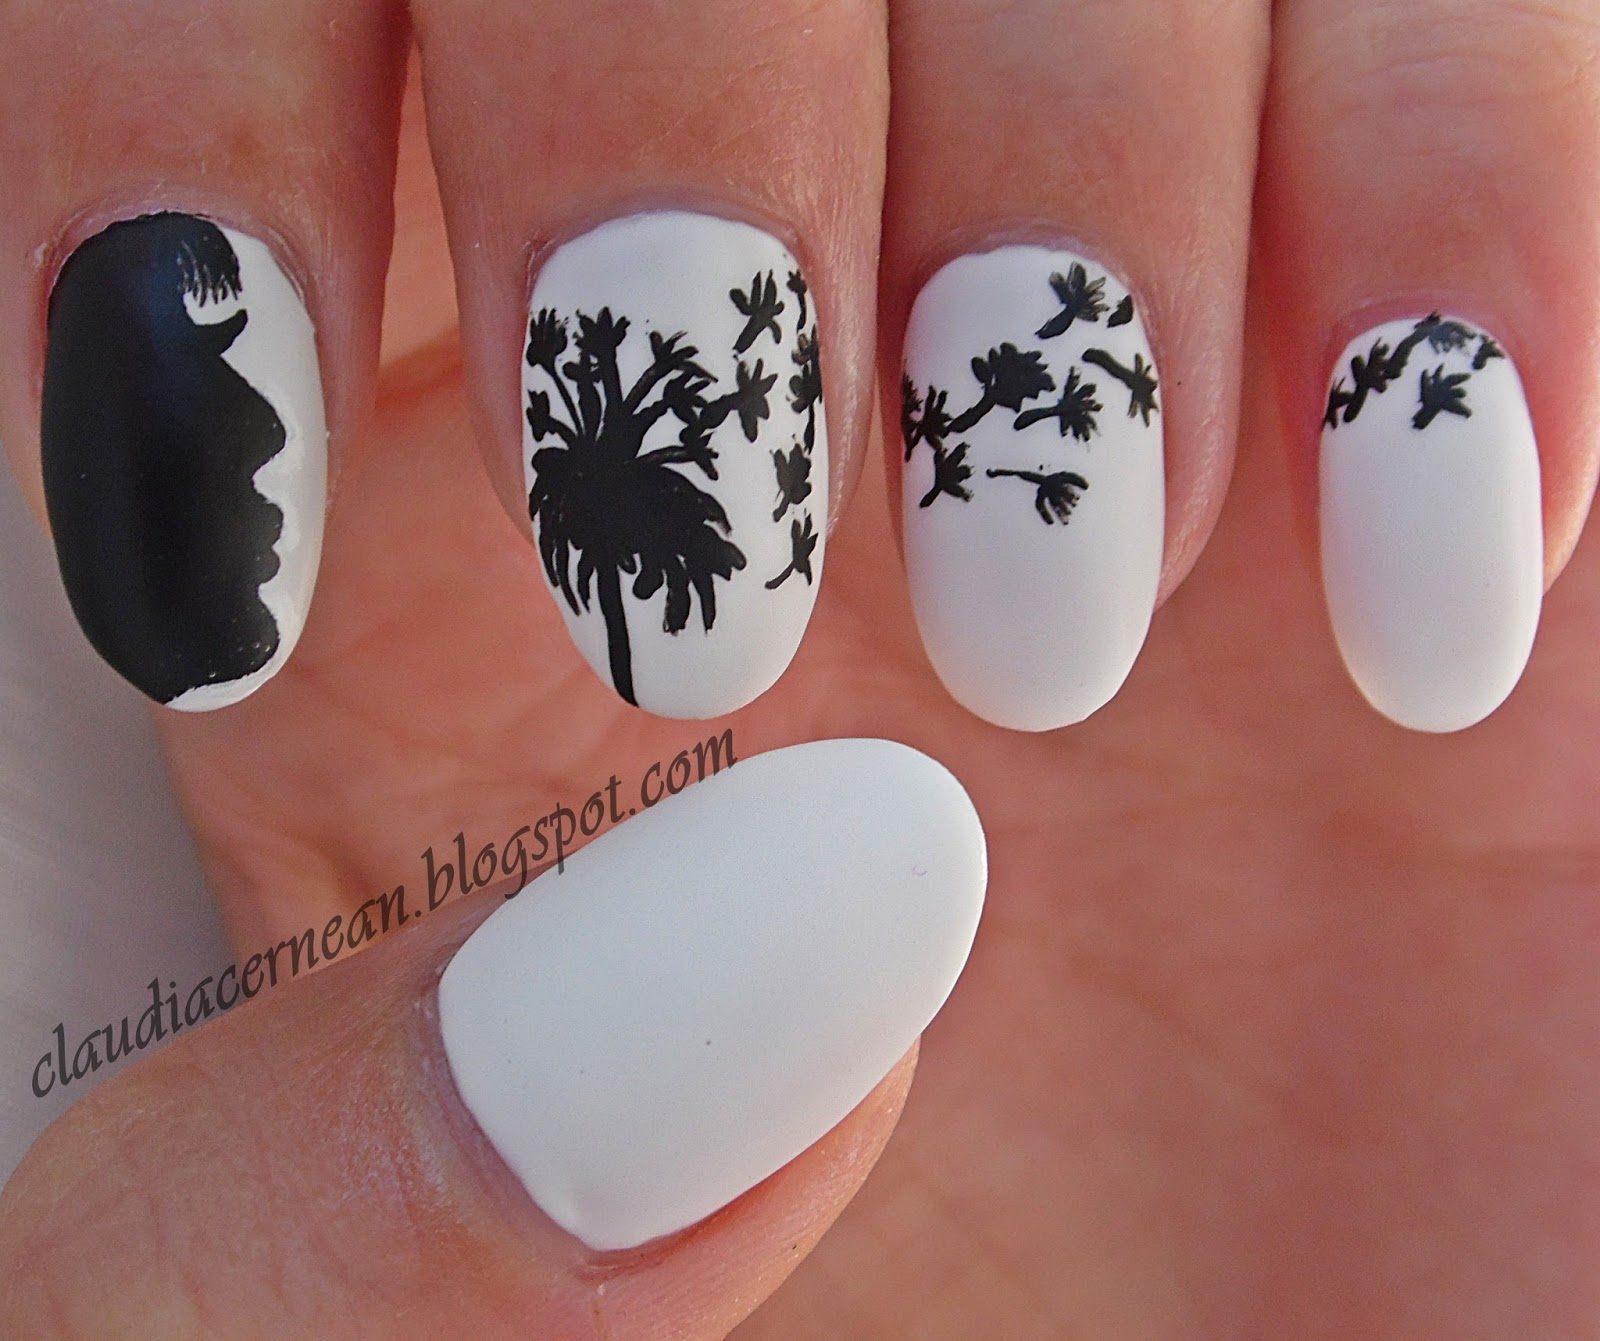 http://claudiacernean.blogspot.co.uk/2013/08/unghii-cu-papadie-dandelion-nails.html